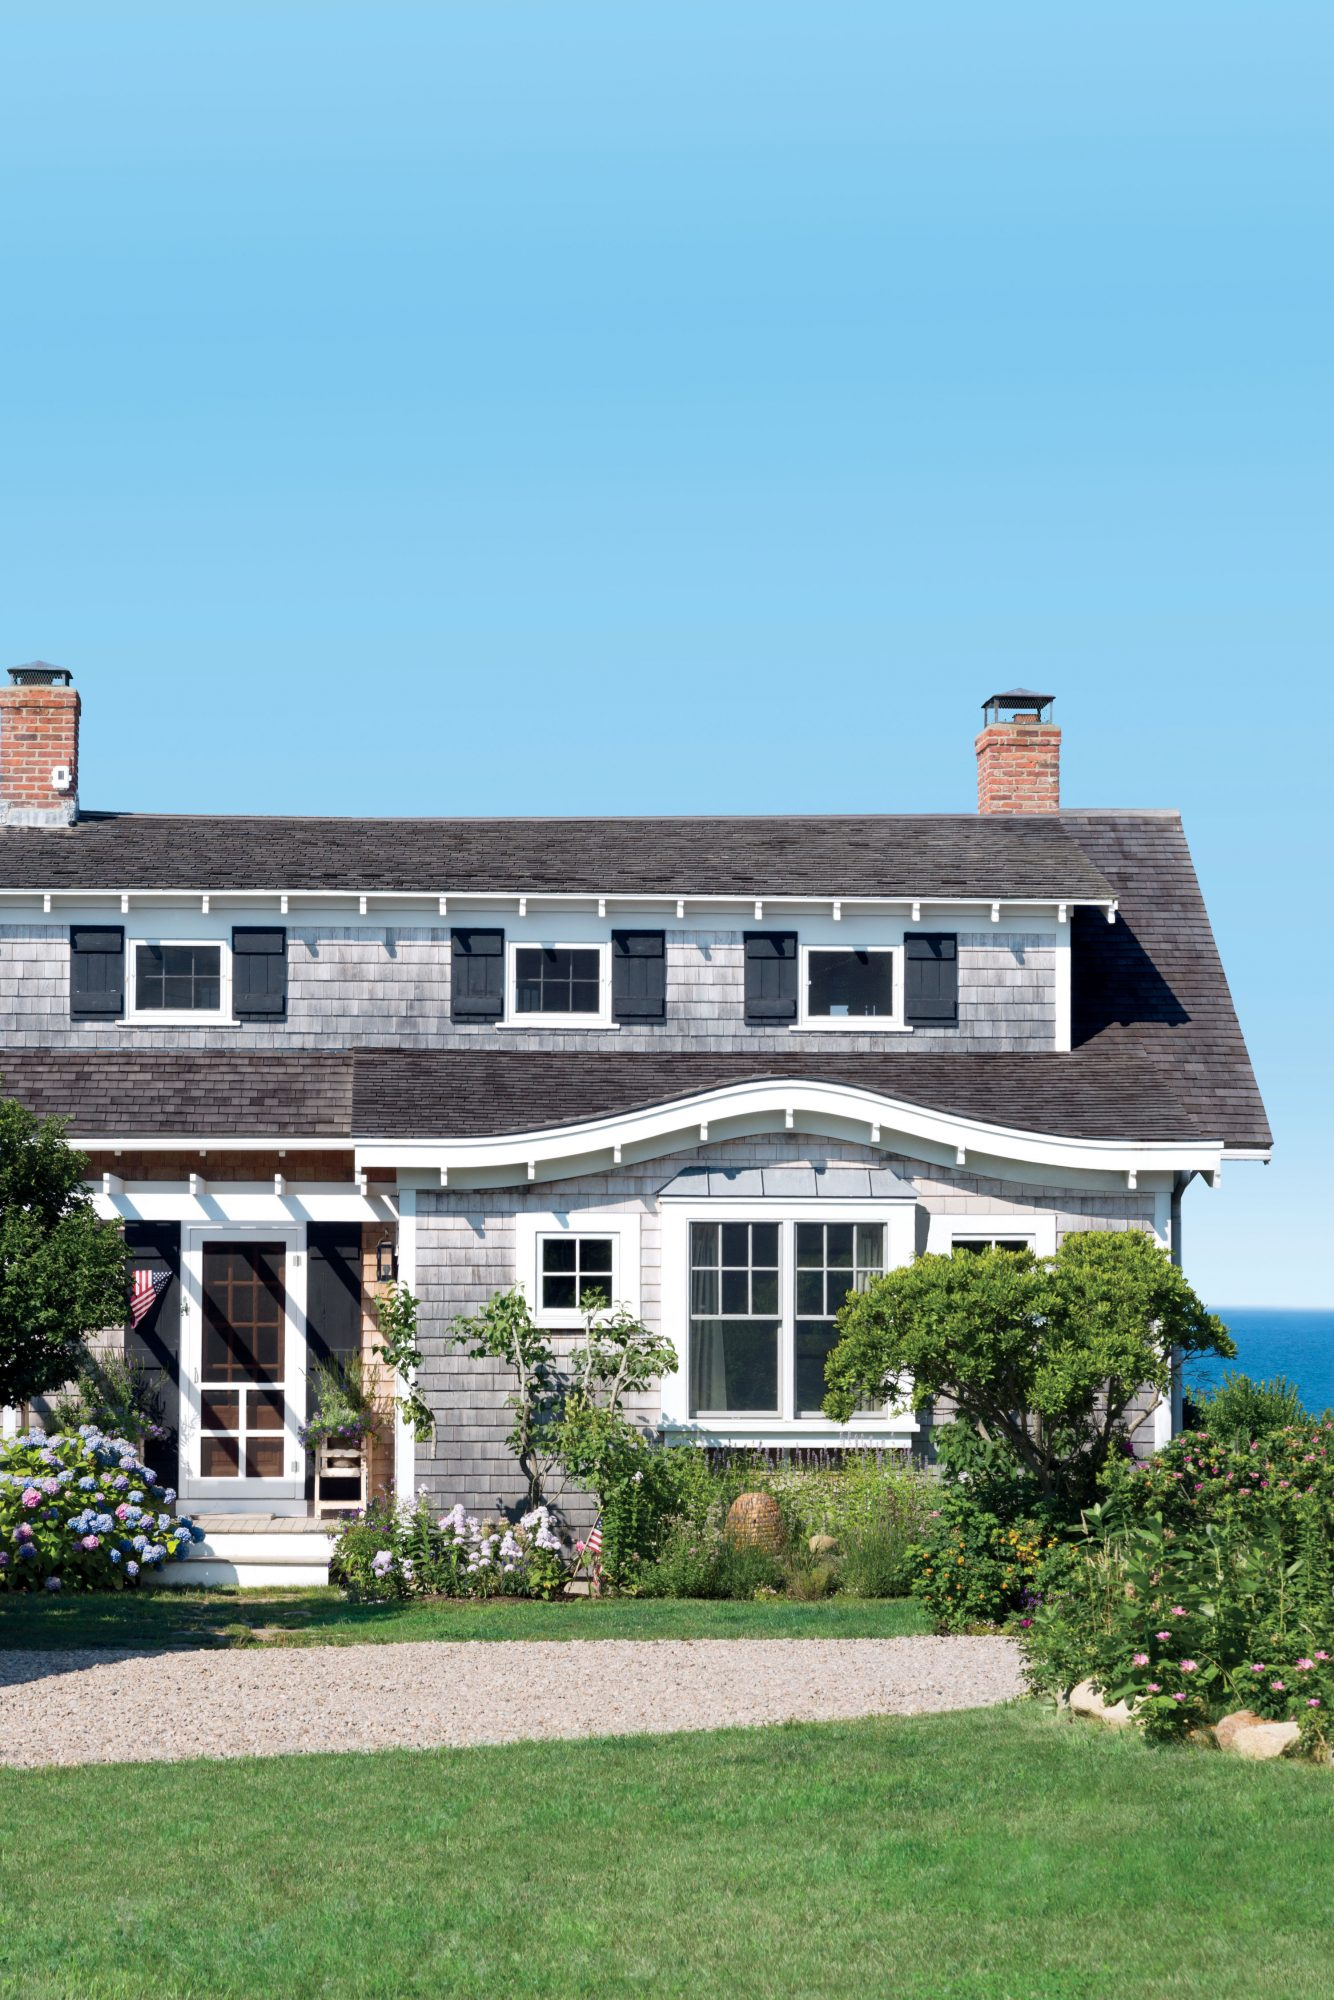 Cape Cod-style beach cottage in Orleans, Massachusettes with gray shingles, black shutters, and a water view.